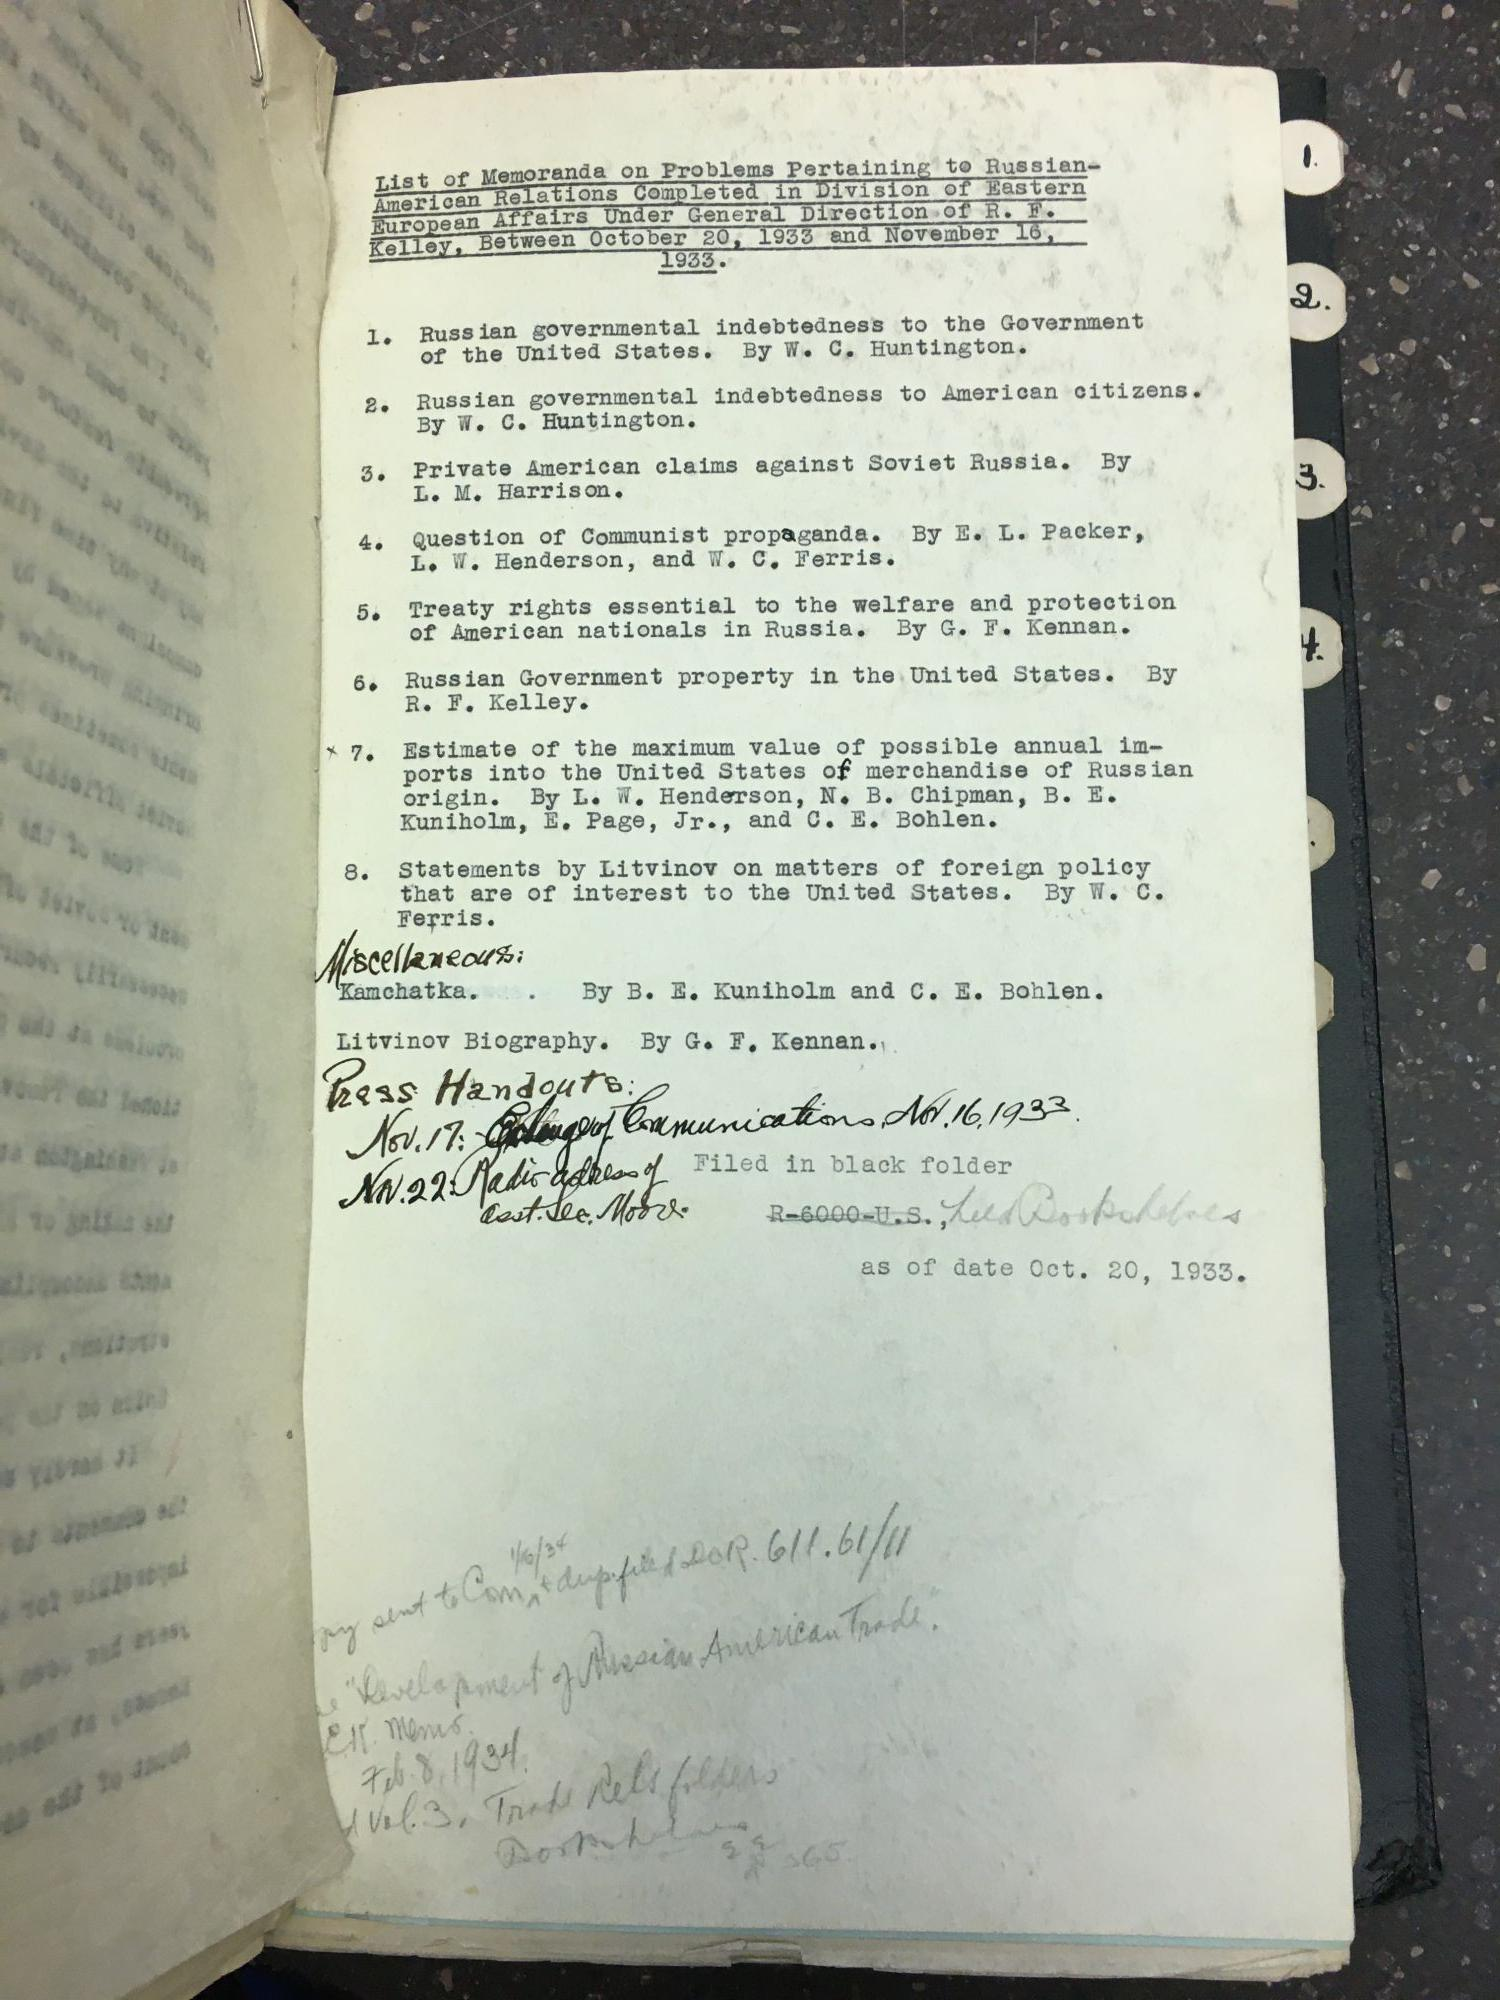 LIST OF MEMORANDA ON PROBLEMS PERTAINING TO RUSSIAN-AMERICAN RELATIONS COMPLETED IN DIVISION OF EASTERN EUROPEAN AFFAIRS UNDER GENERAL DIRECTION OF R. F. KELLEY BETWEEN OCTOBER 20, 1933 AND NOVEMBER 16, 1933 [TYPESCRIPT COPIES OF STATE DEPARTMENT MEM. Huntington, Harrison, Packer, Henderson, Ferris, Kennan, Kelley, Chipman, Kuniholm, Page, Bohlen.